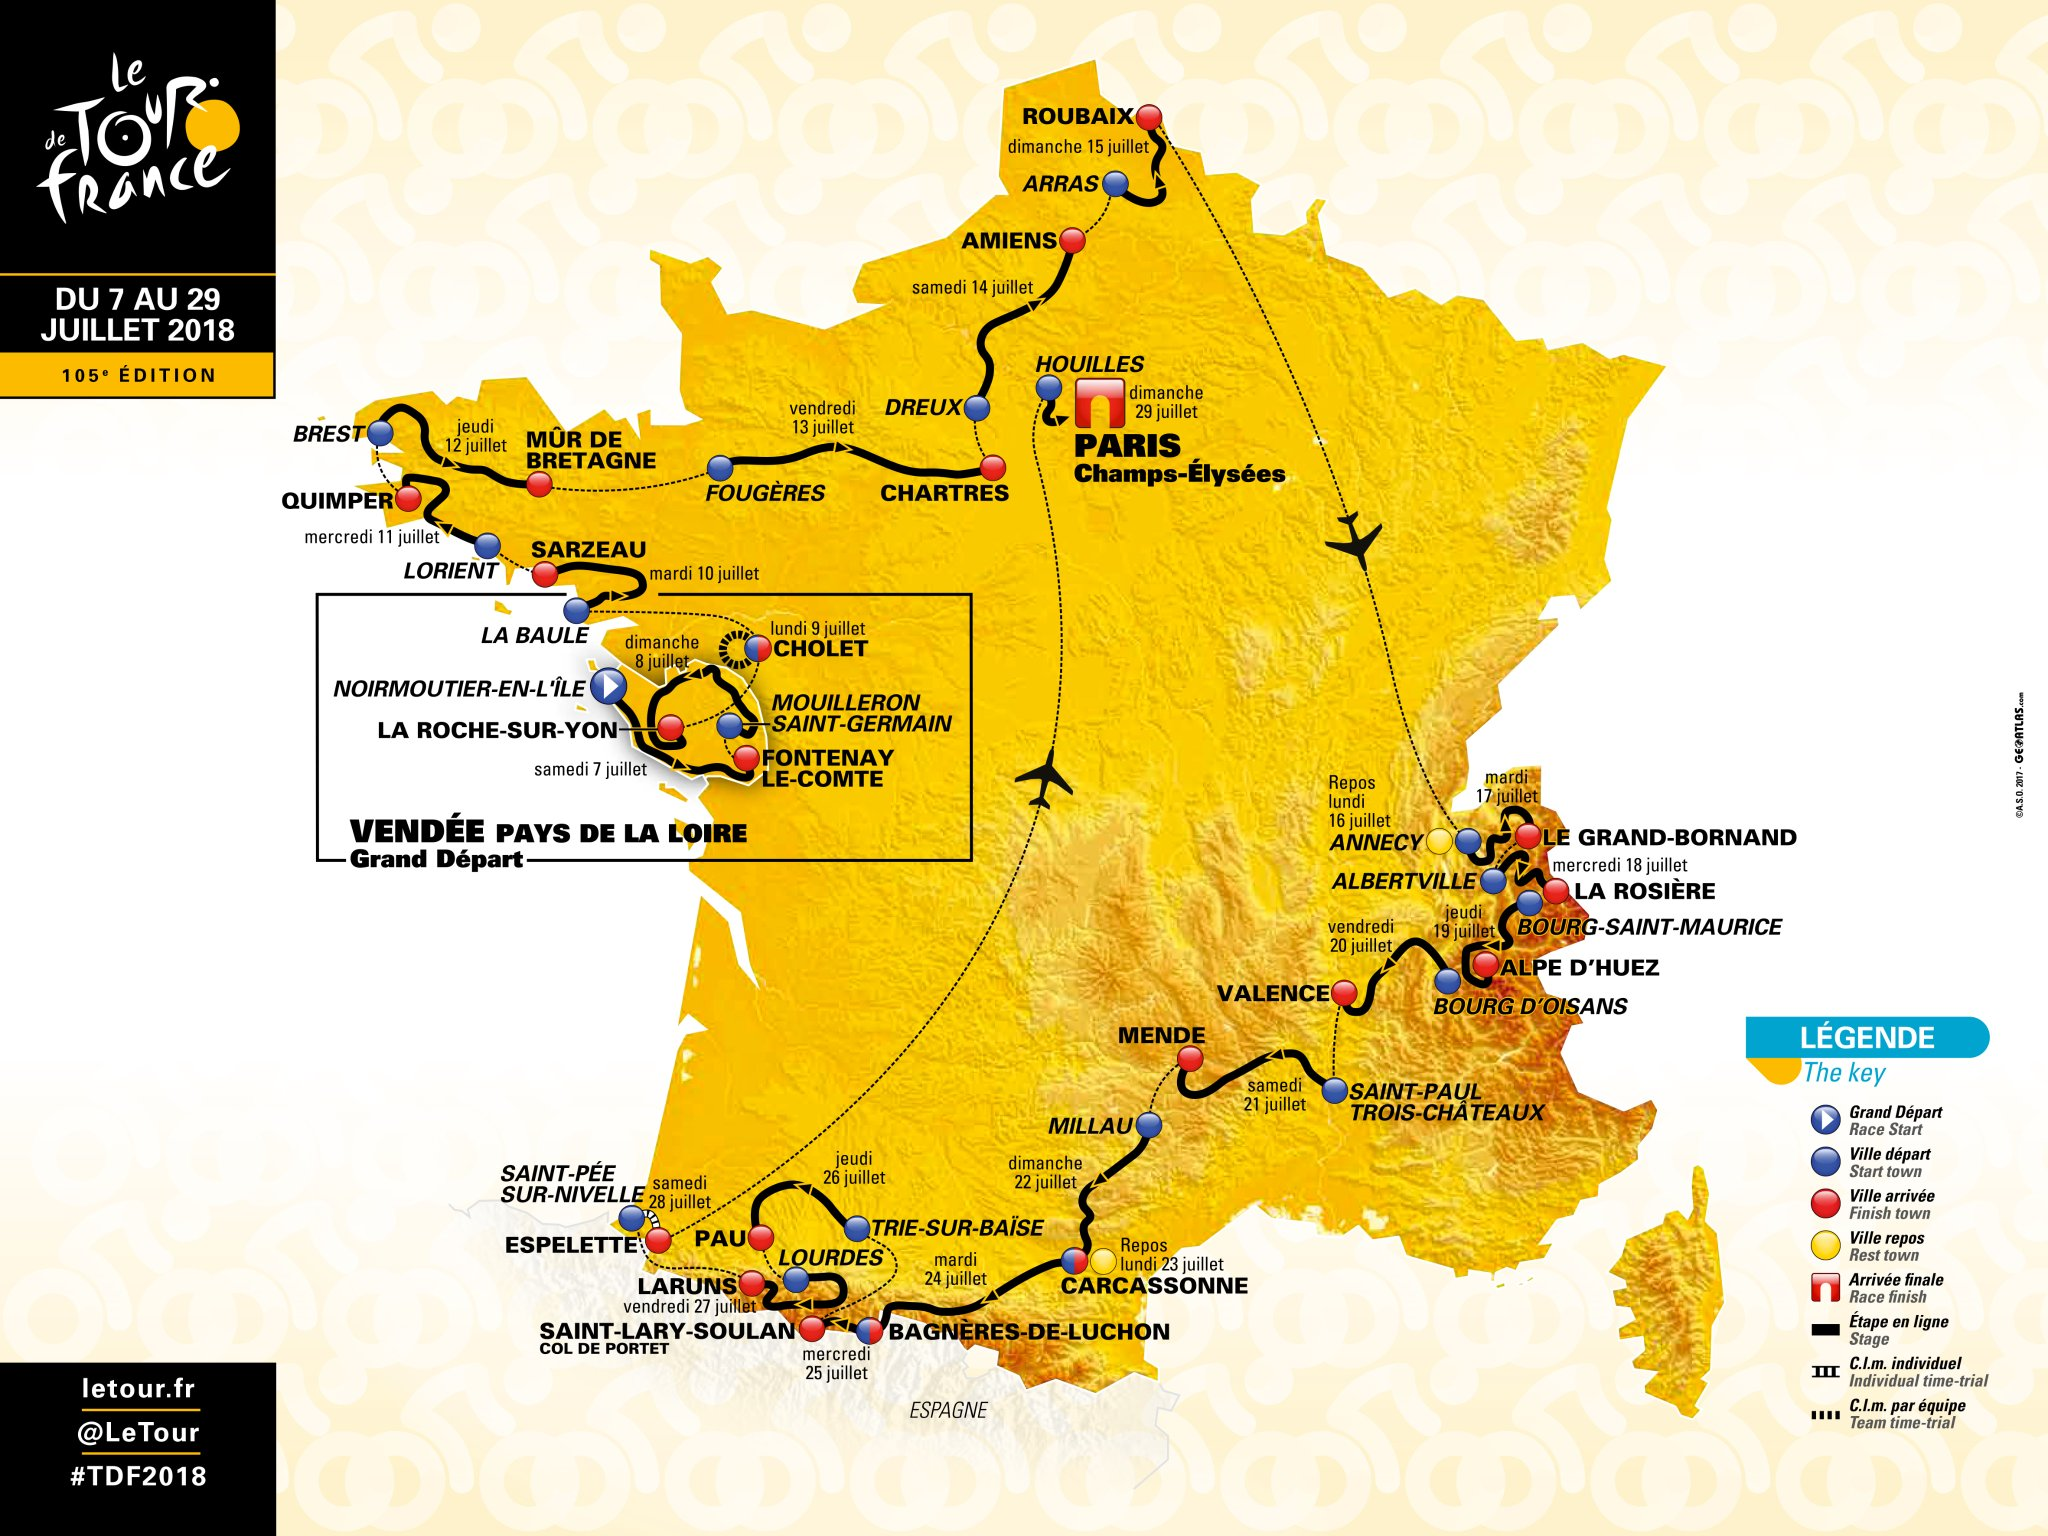 Here is the official route of the tour de france 2018